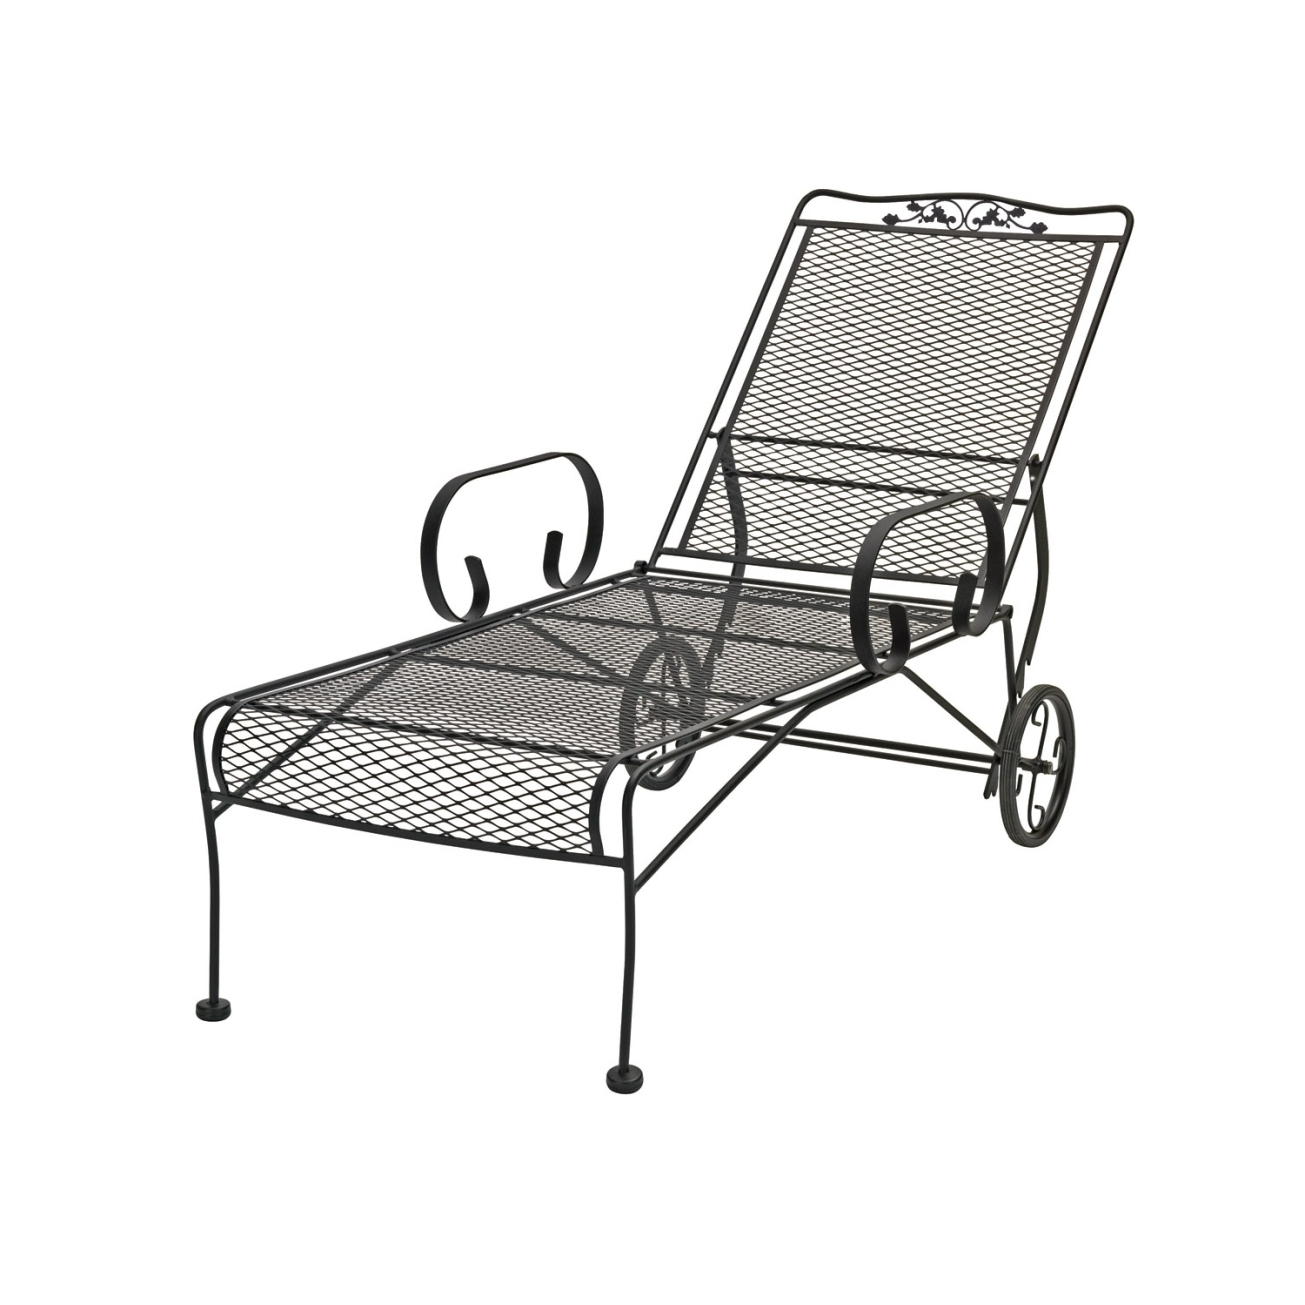 2018 Aluminum Chaise Lounge Chairs Inside Lovable Patio Chaise Lounge Chairs Outdoor Lounge Chairs Outdoor (View 1 of 15)